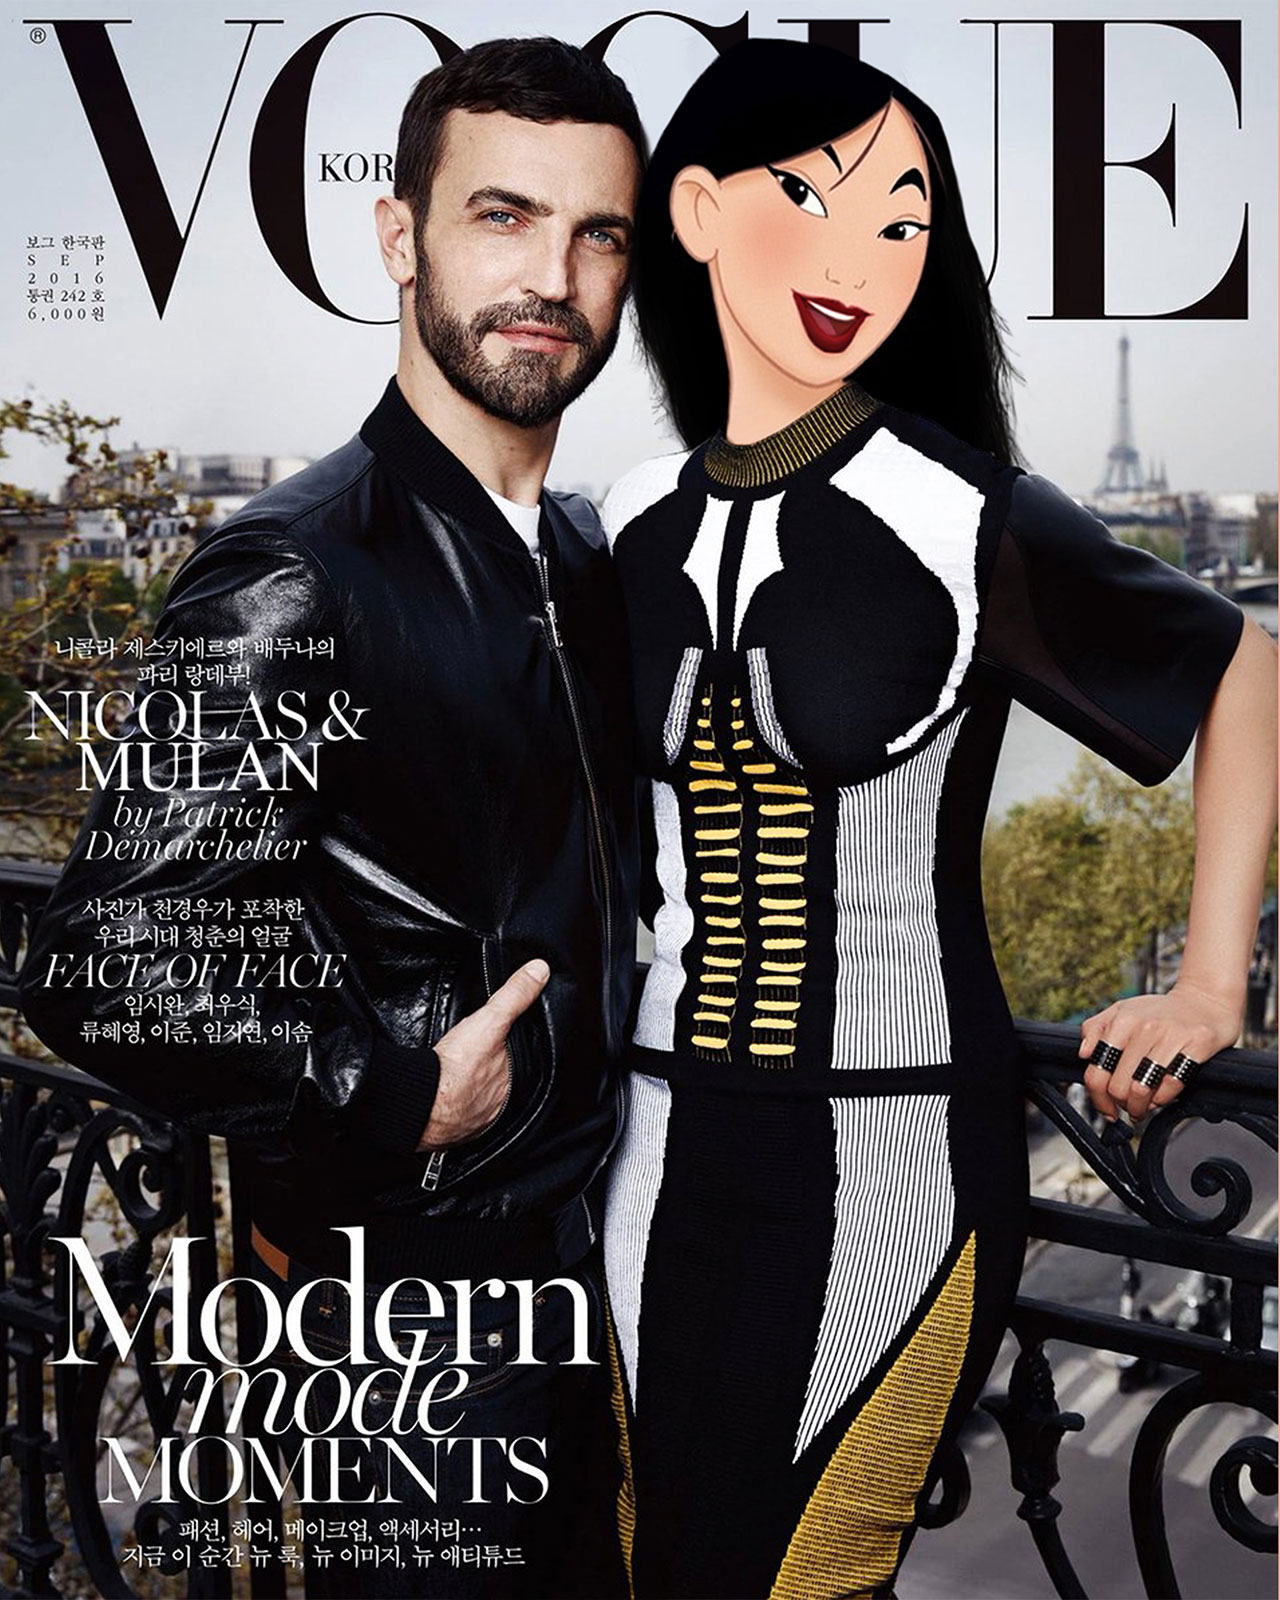 Nicolas Ghesquière and Bae Doona as Mulan in Louis Vuitton from the cover of the September 2016 issue of Vogue Korea. Photographed by Patrick Demarchelier, photo edit by Gregory Masouras.